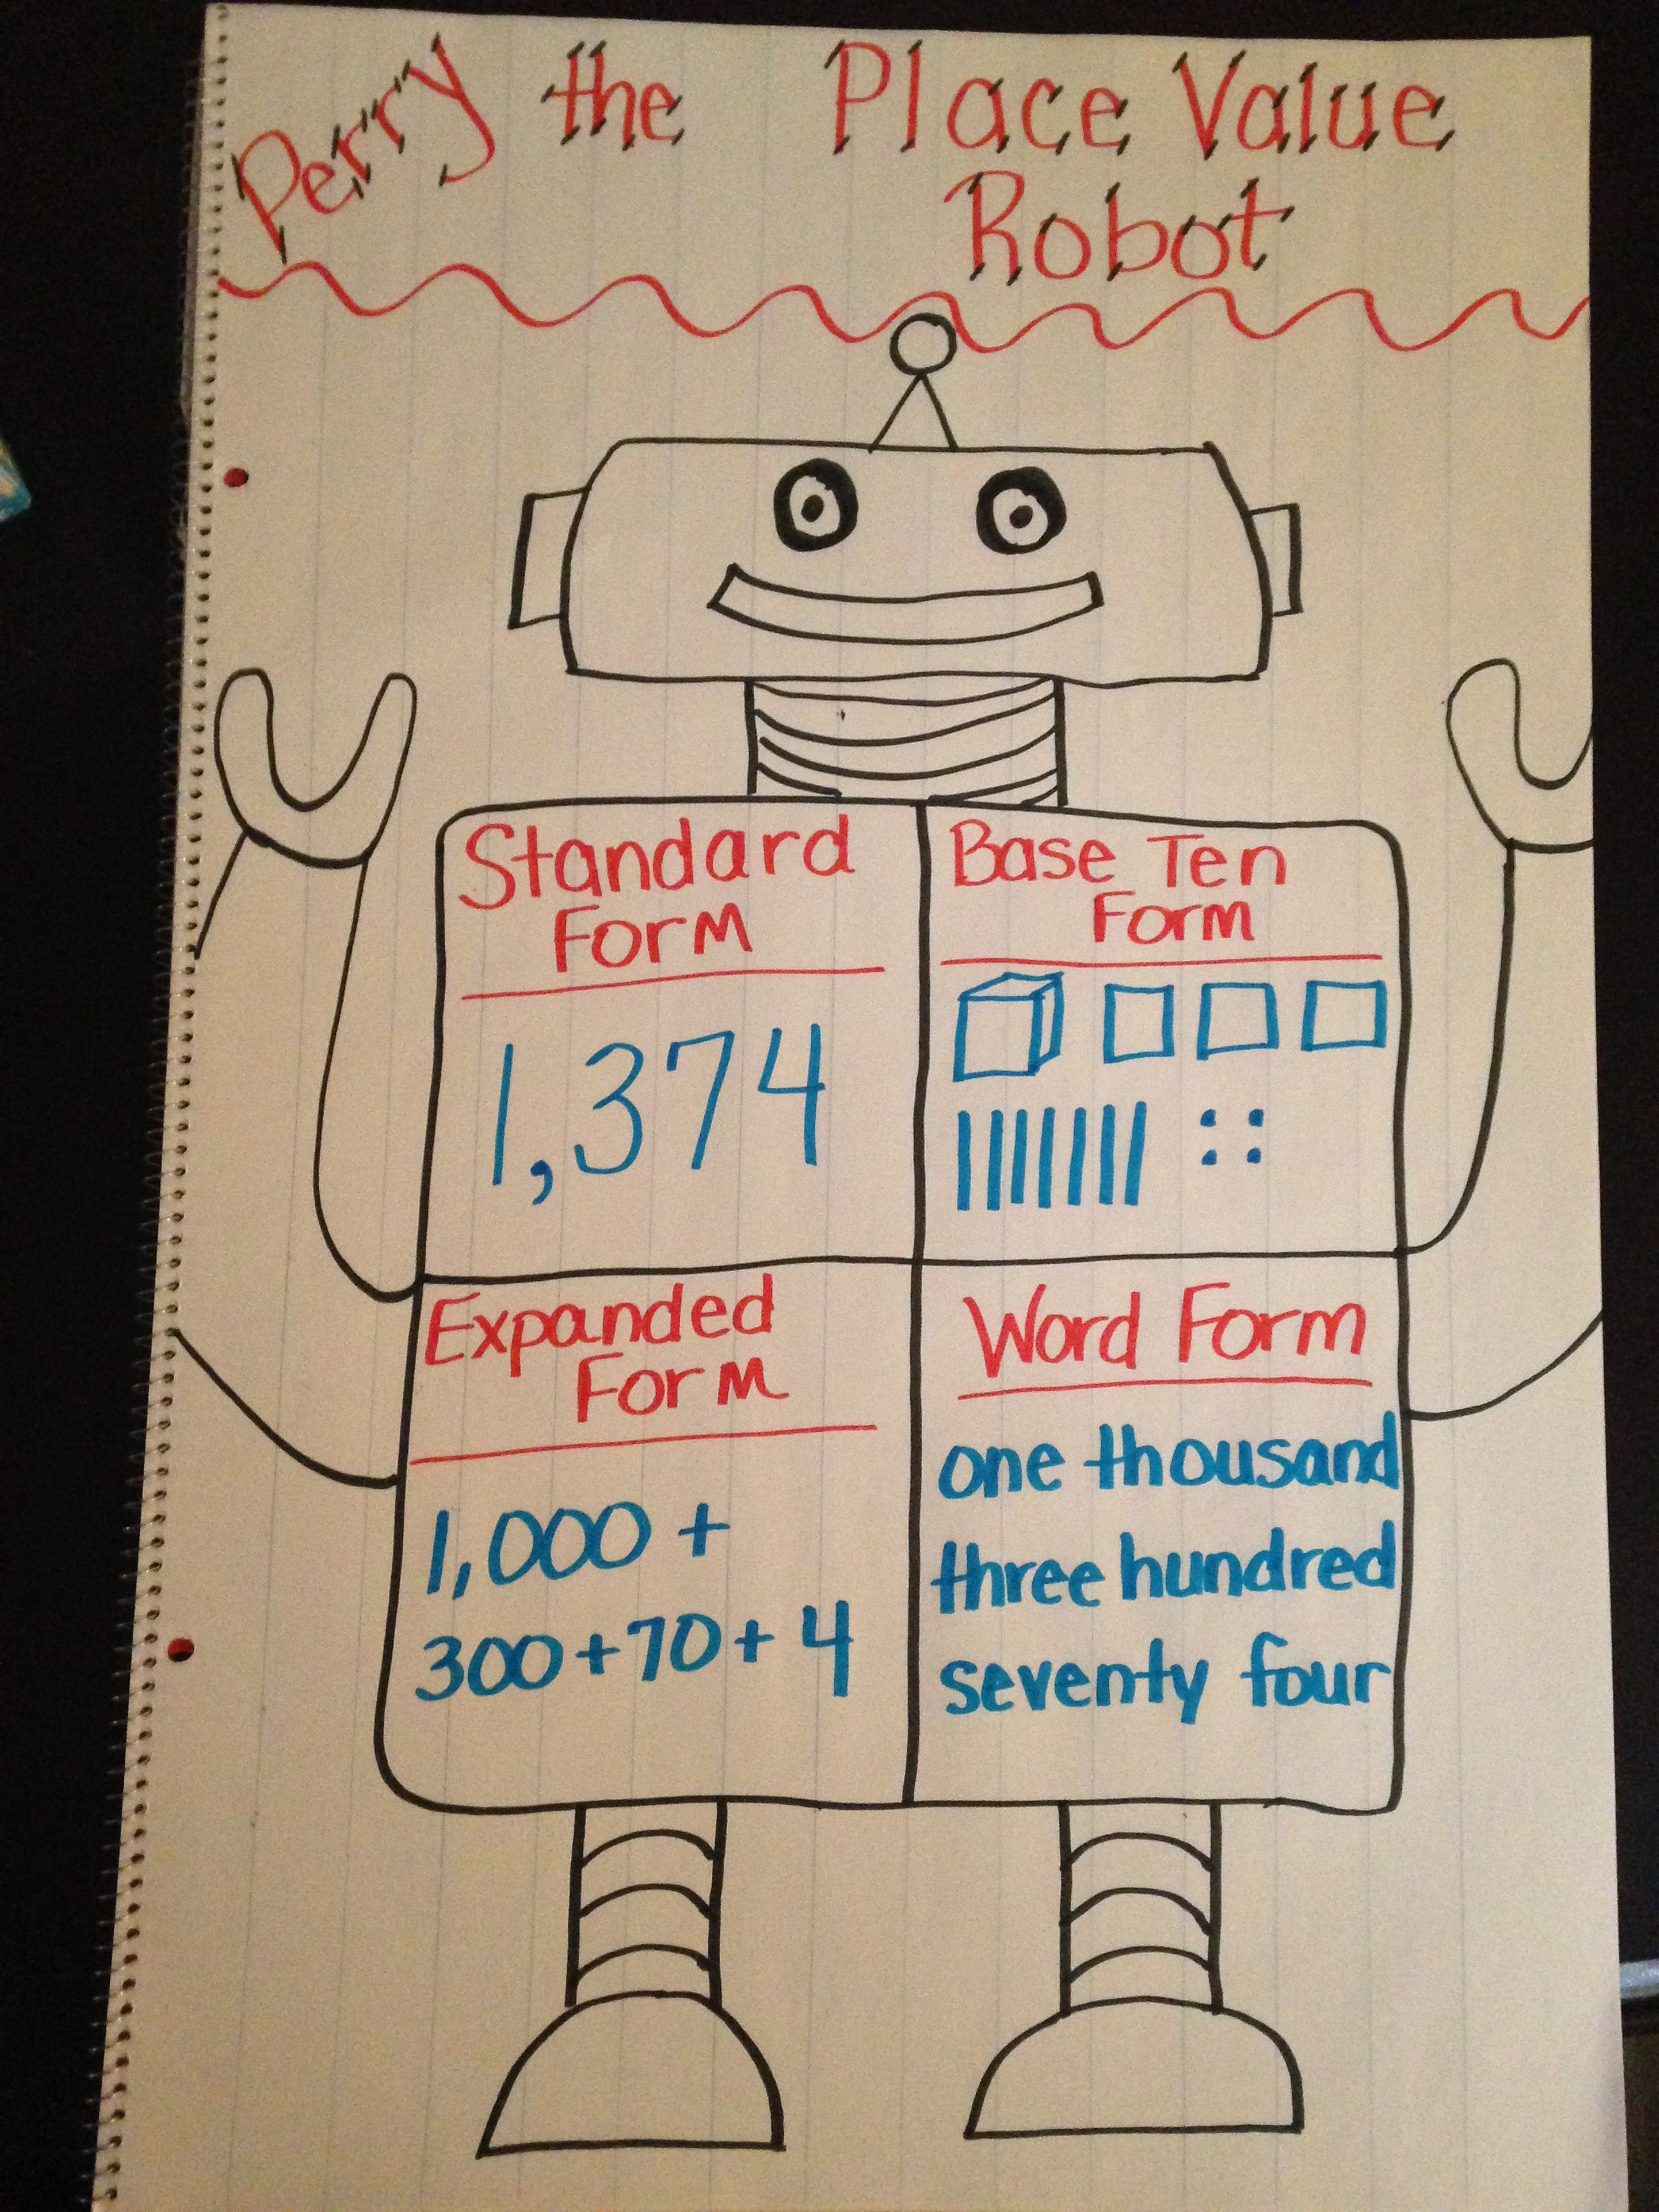 Perry The Place Value Robot